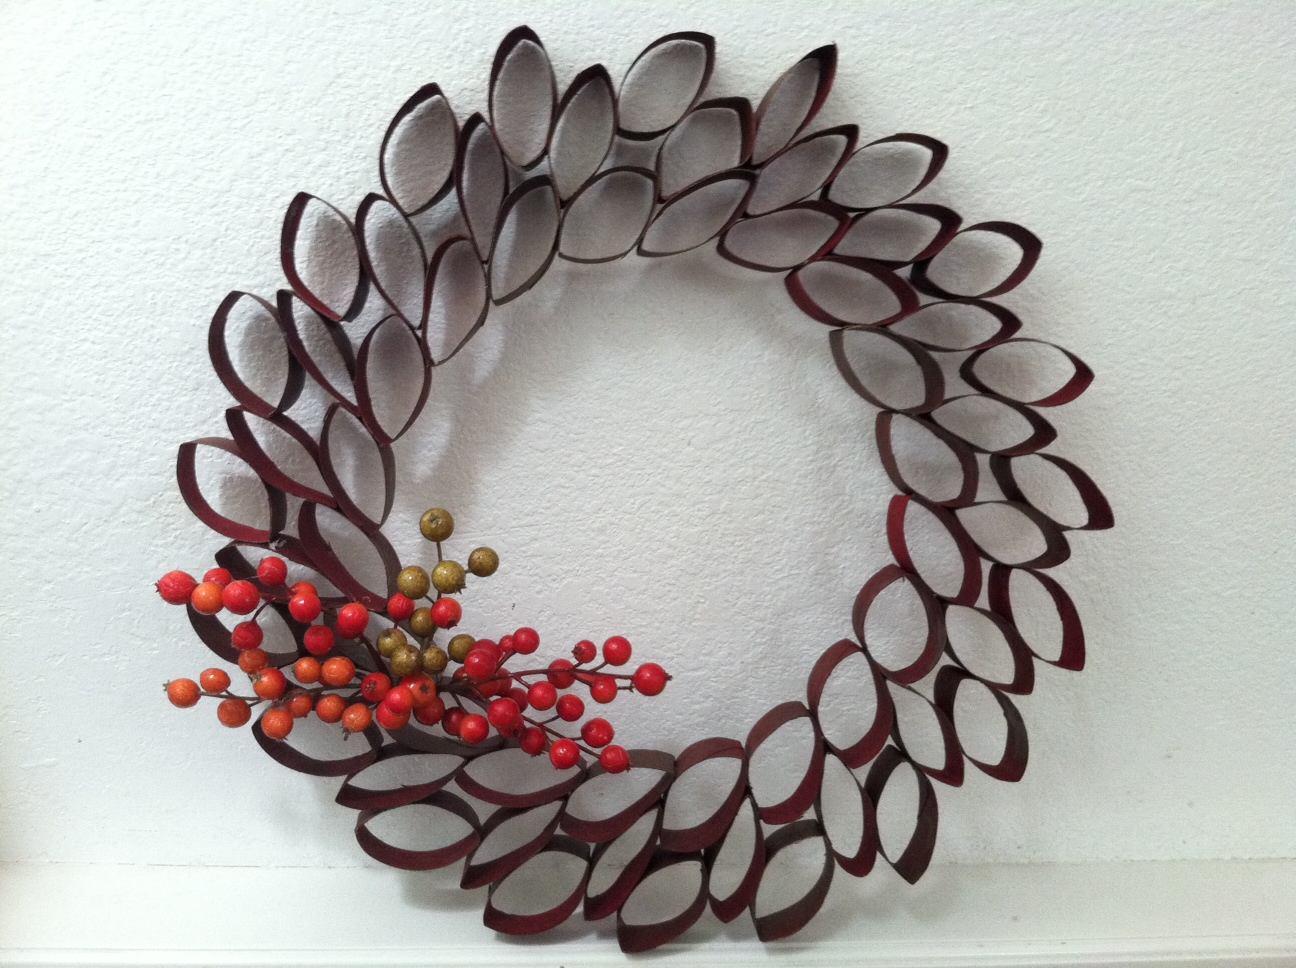 i was inspired to save many toilet paper rolls because i wanted to make a holiday wreath inspired